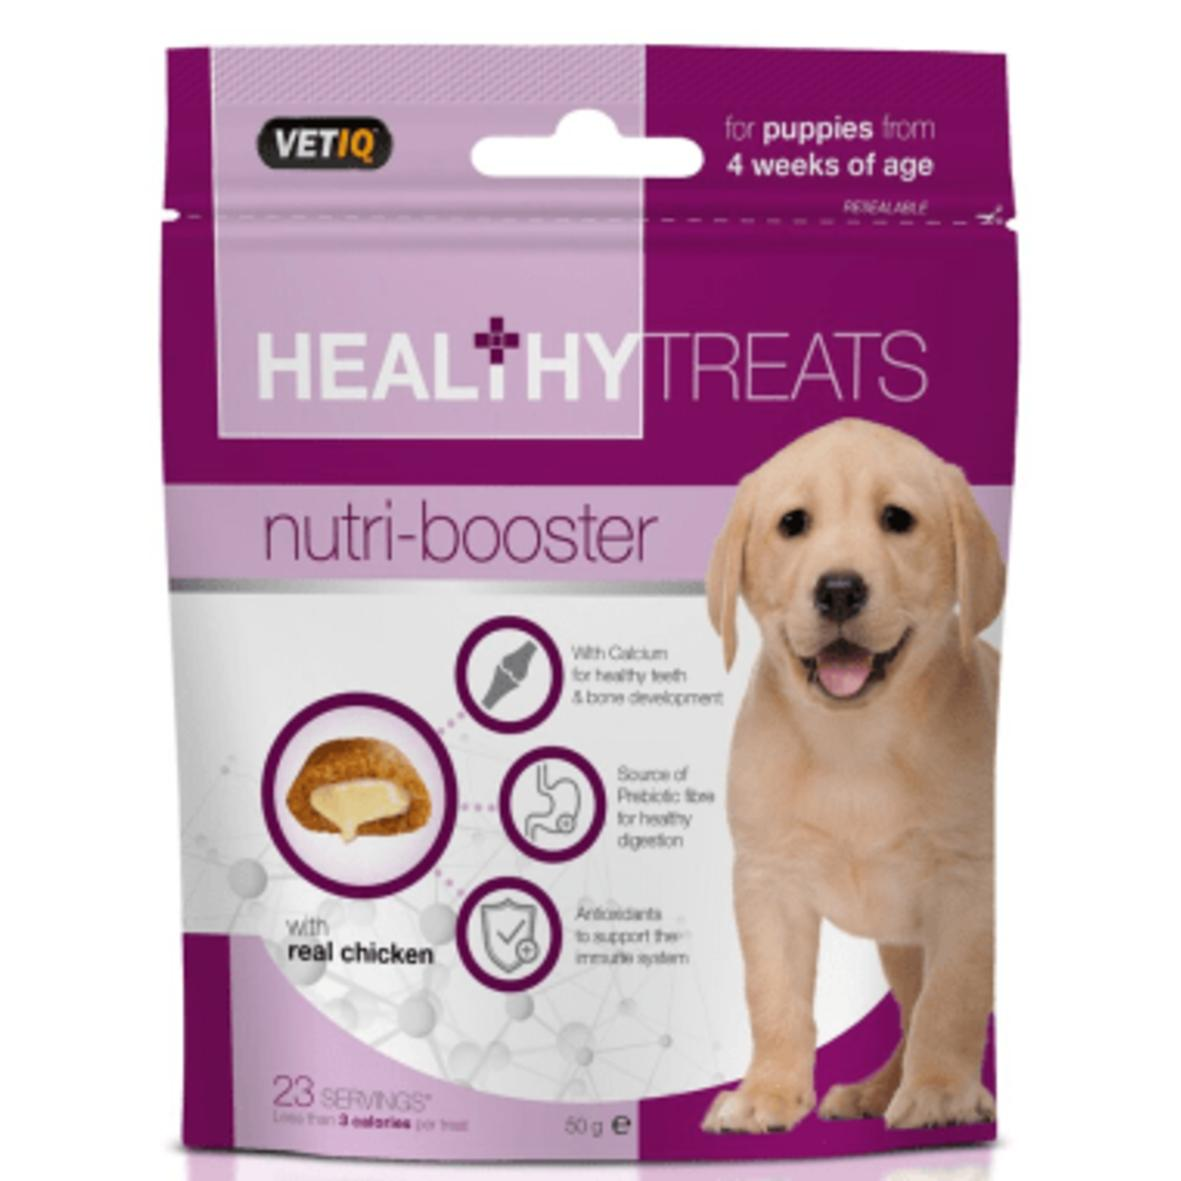 CLEARANCE VetIQ Healthy Treats NutriBooster for Puppies 50gm